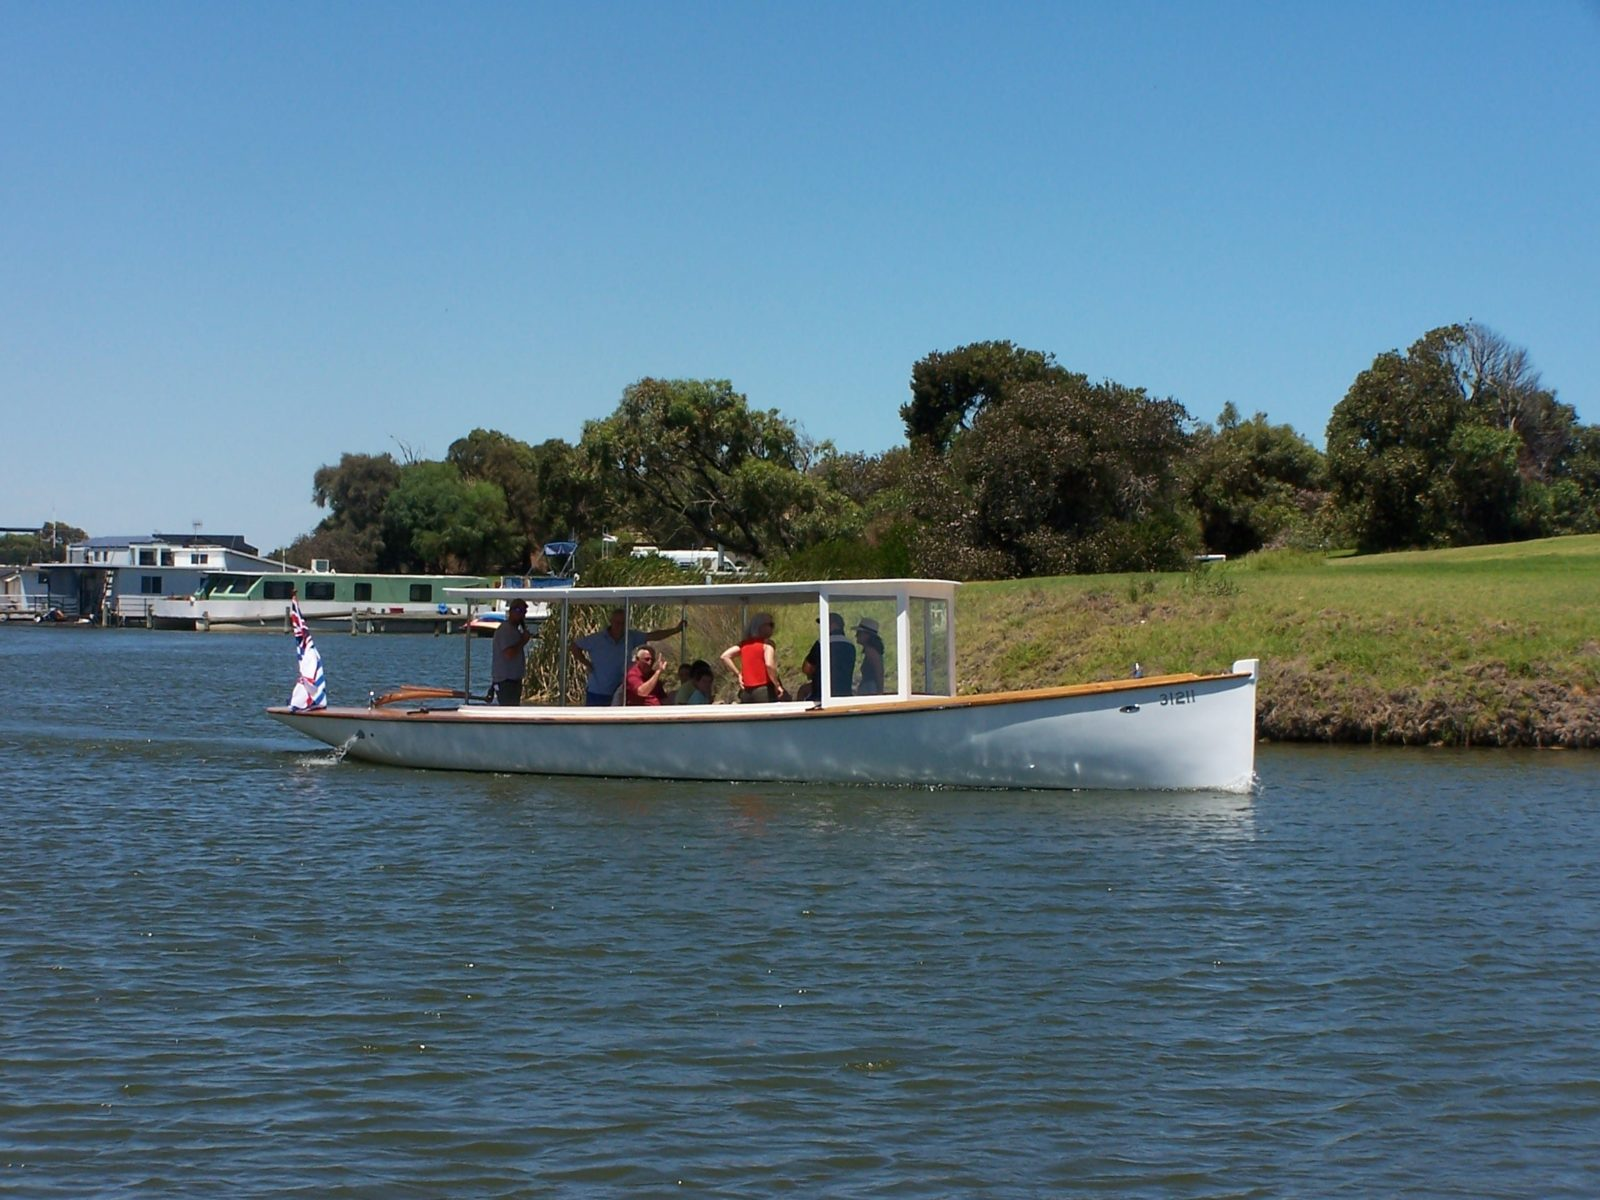 onboard maranui hear quality commentry from our expert staff cruising through the goolwa waterway